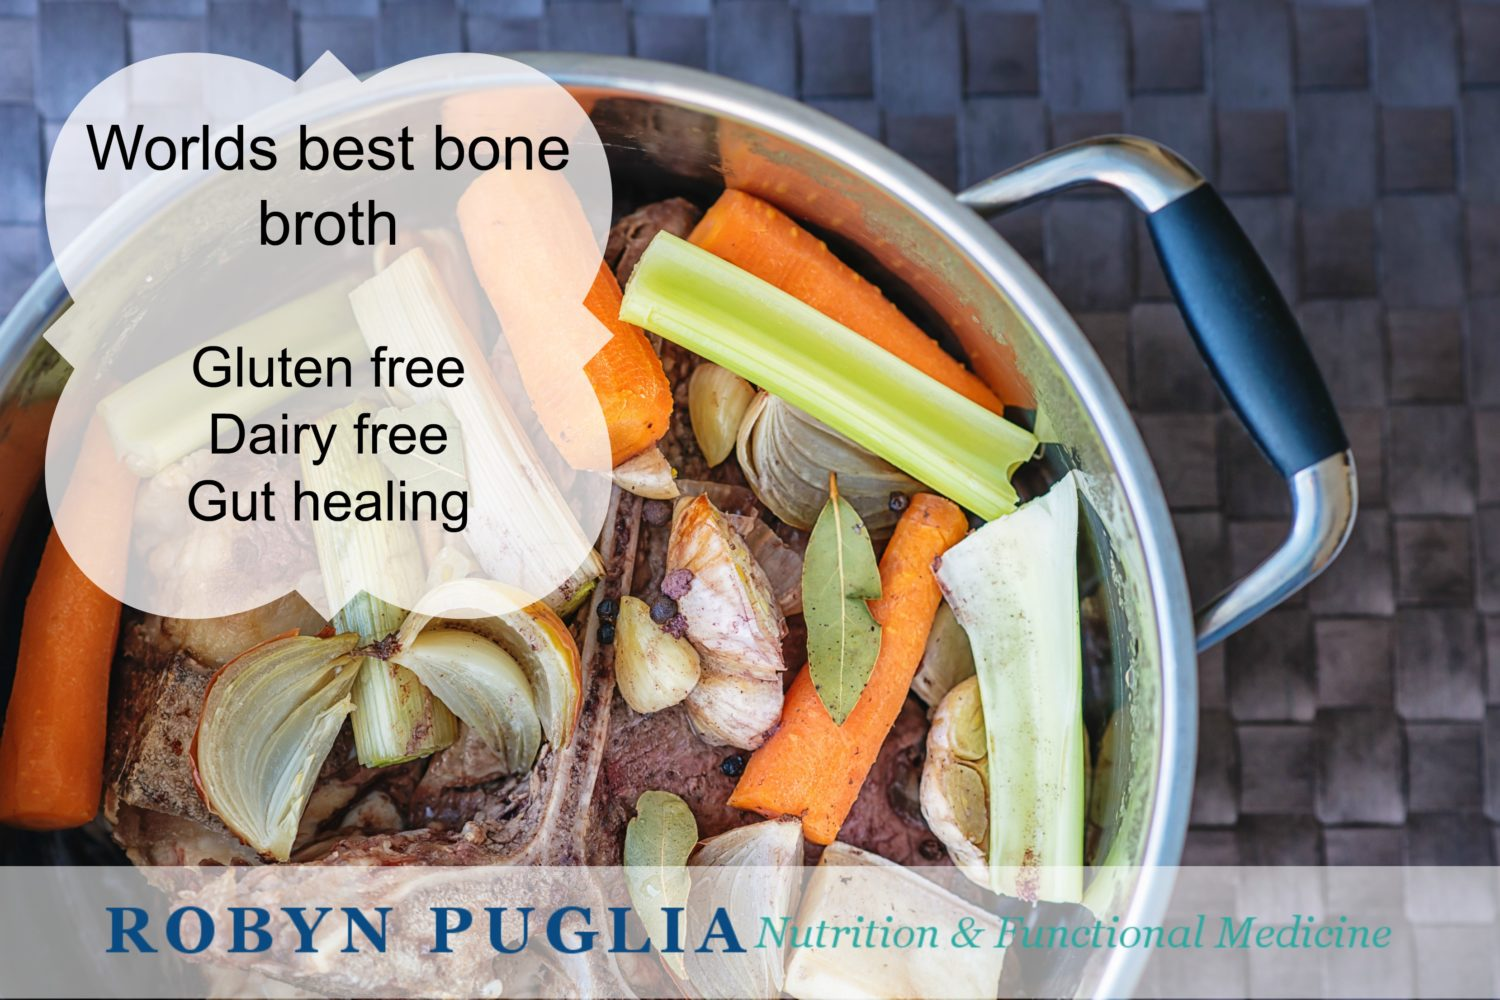 Worlds Best Bone Broth